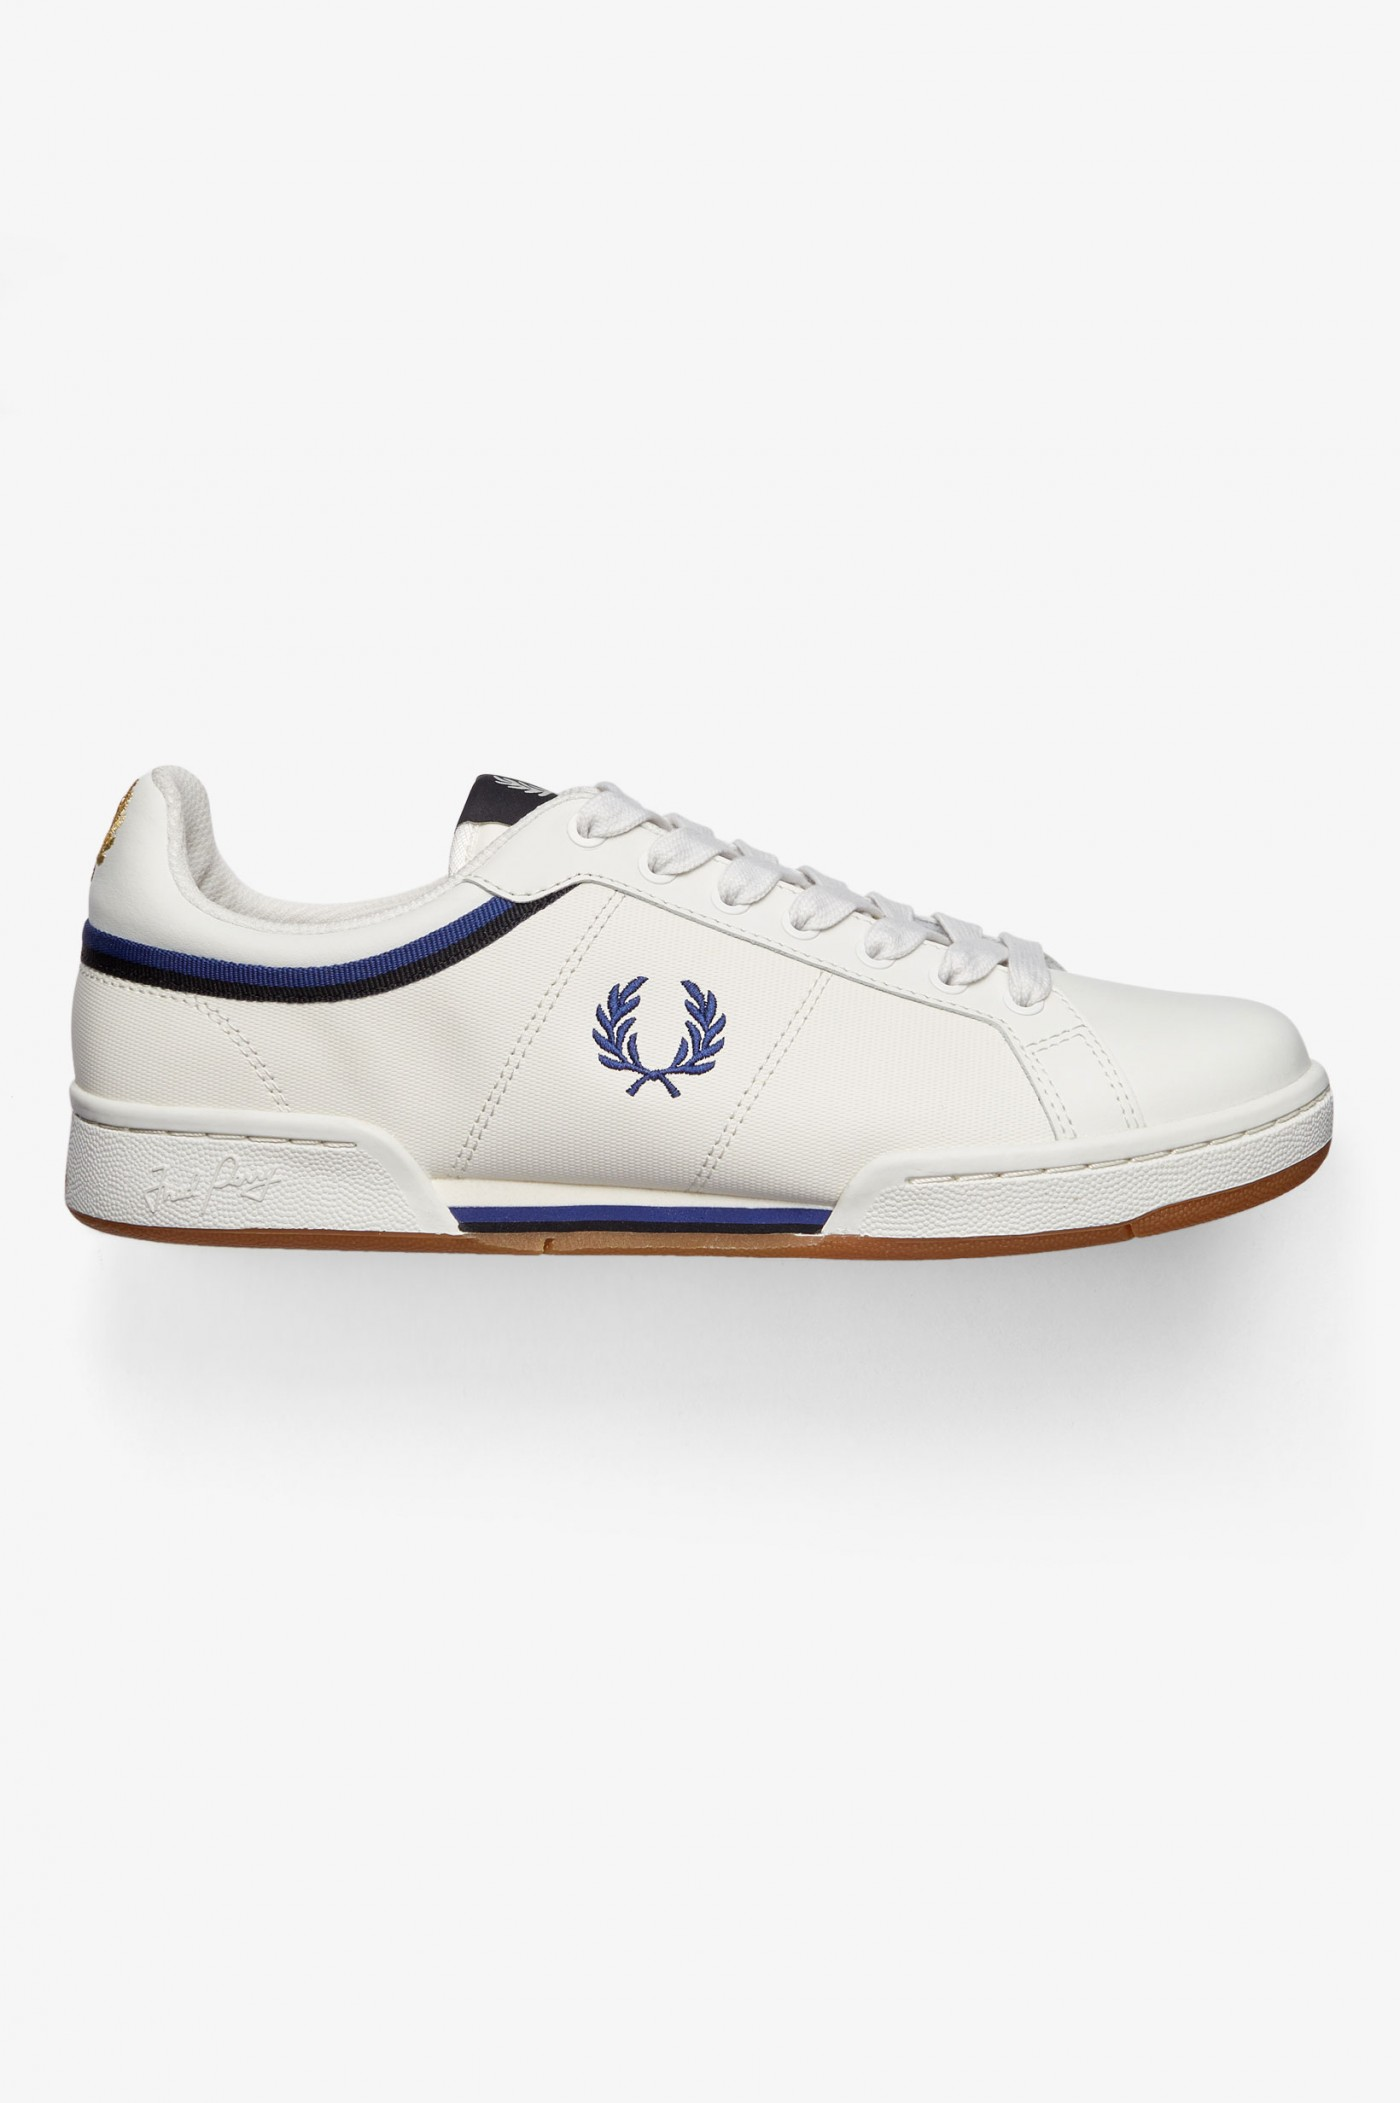 Fred Perry B721 Bottes En Cuir Porcelaine Baskets